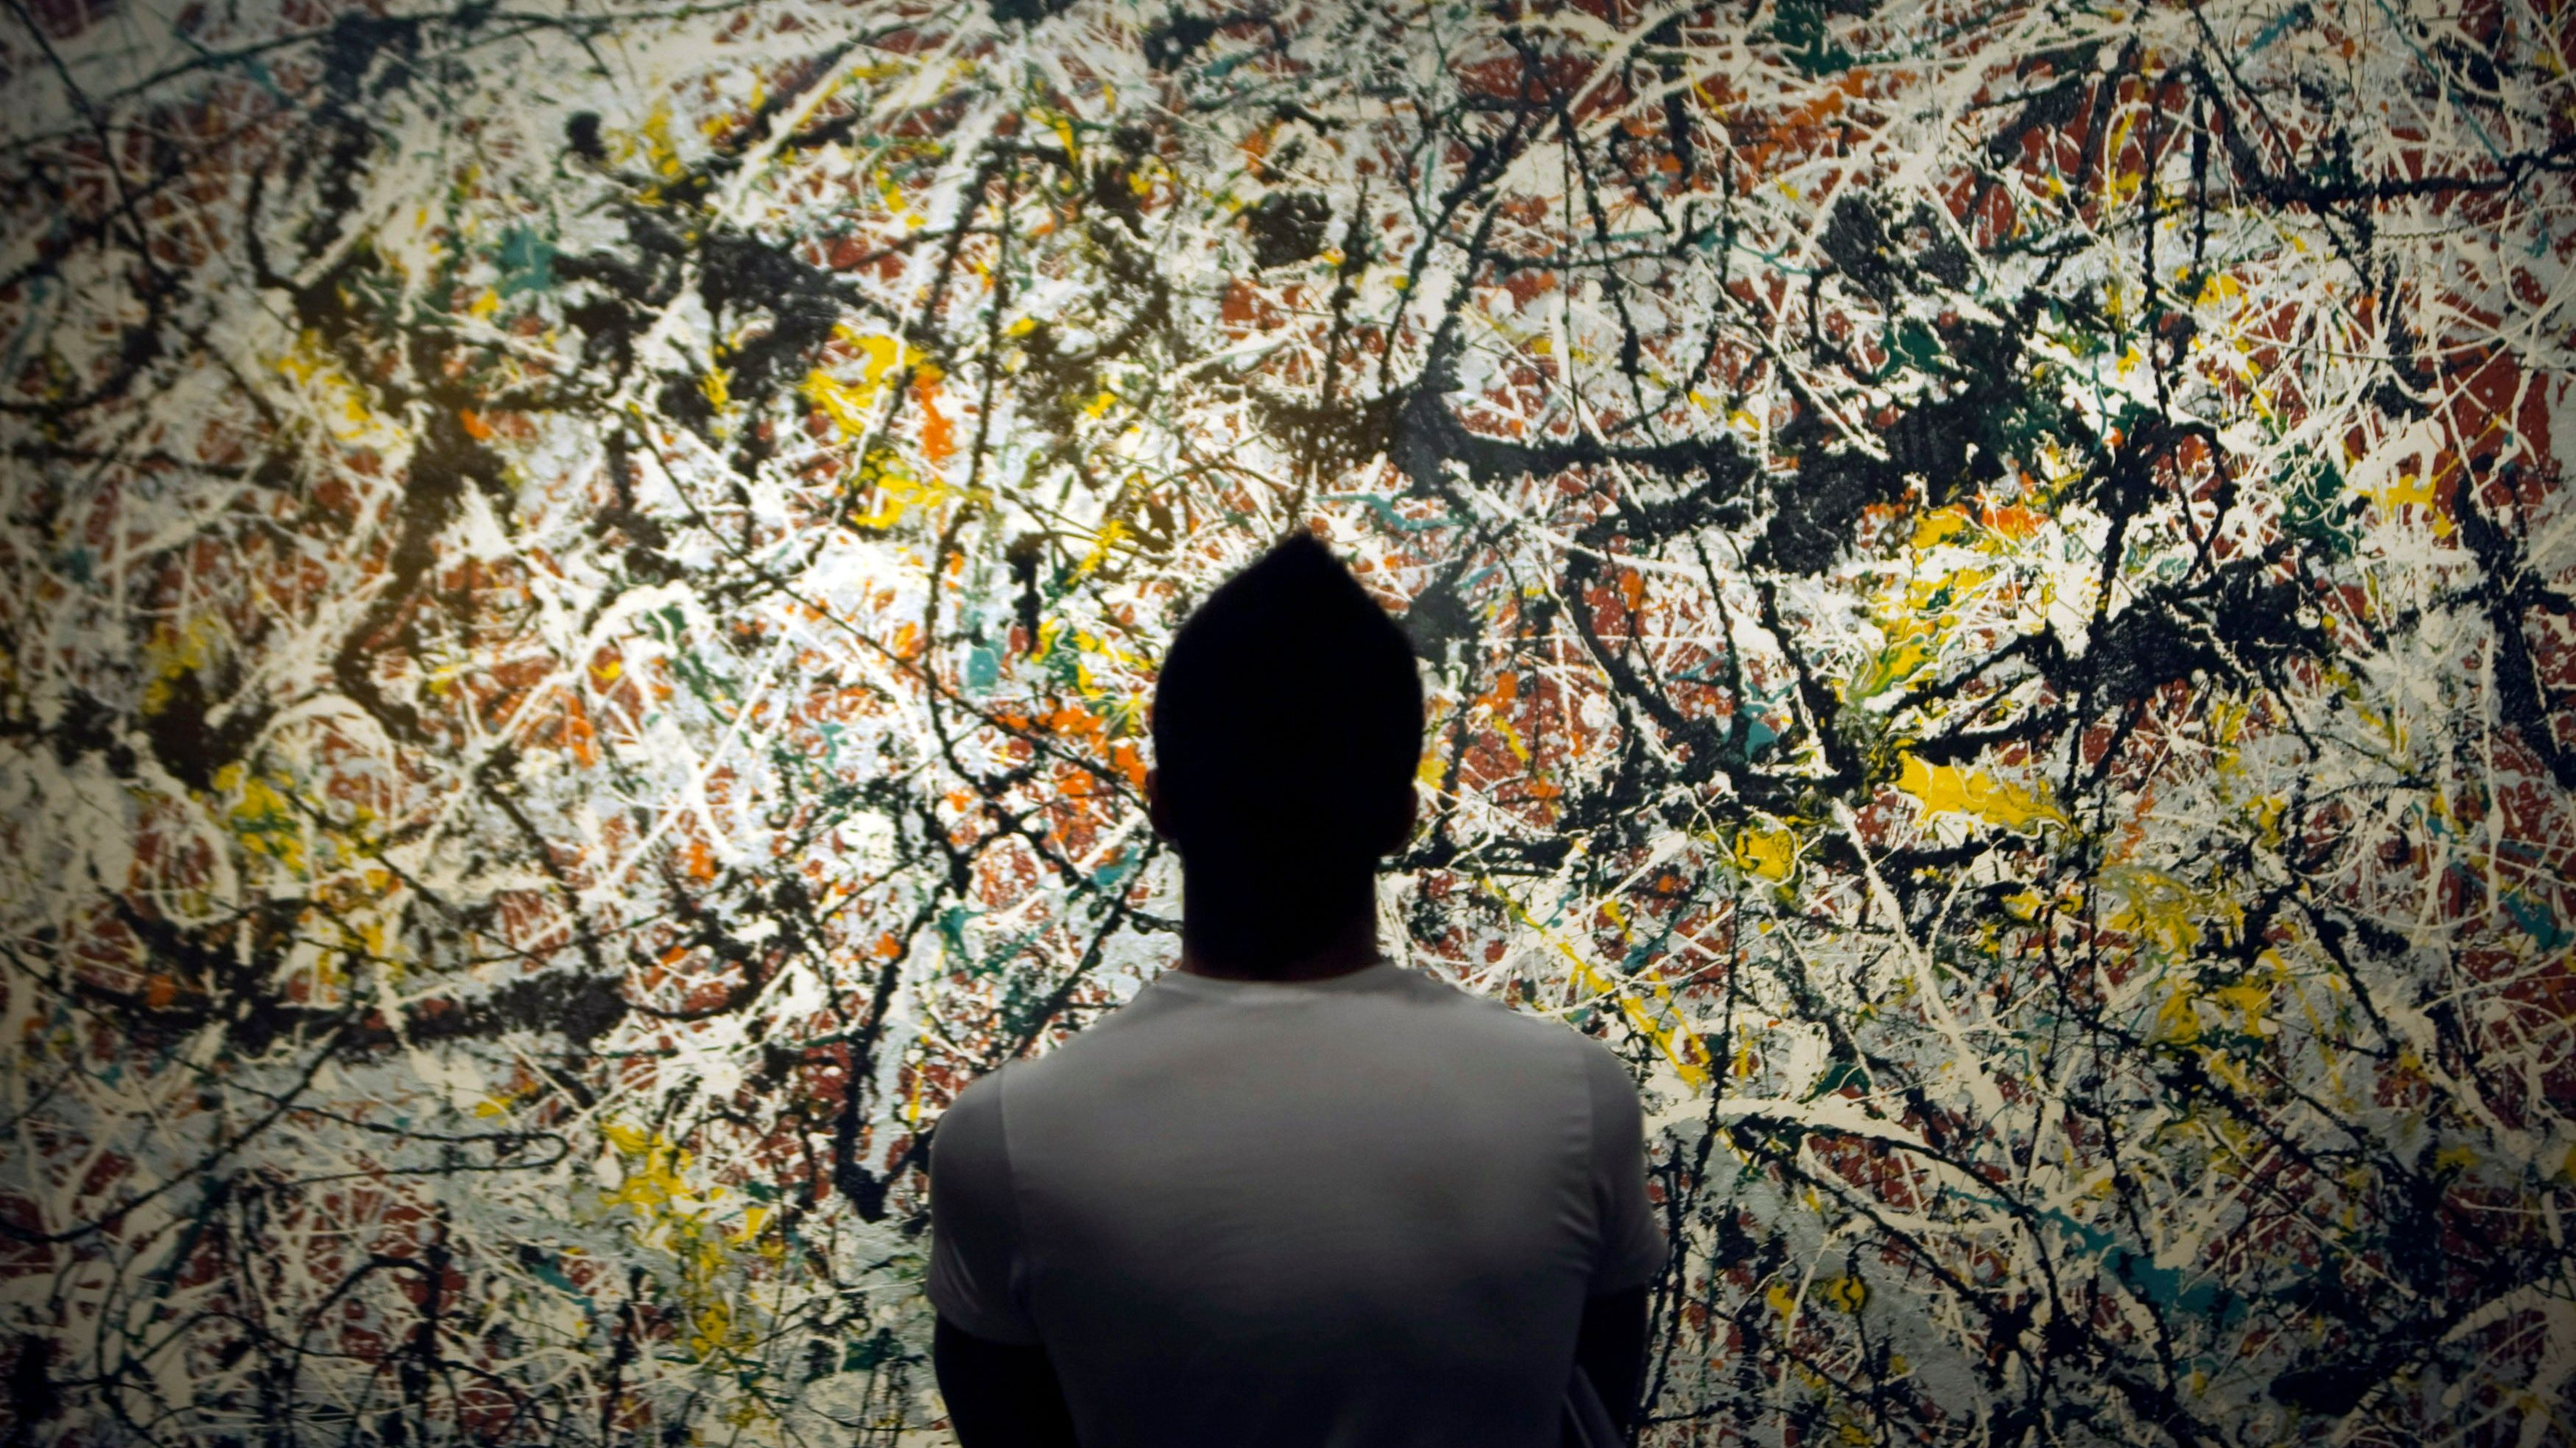 A person looks at a Jackson Pollock painting in an art gallery